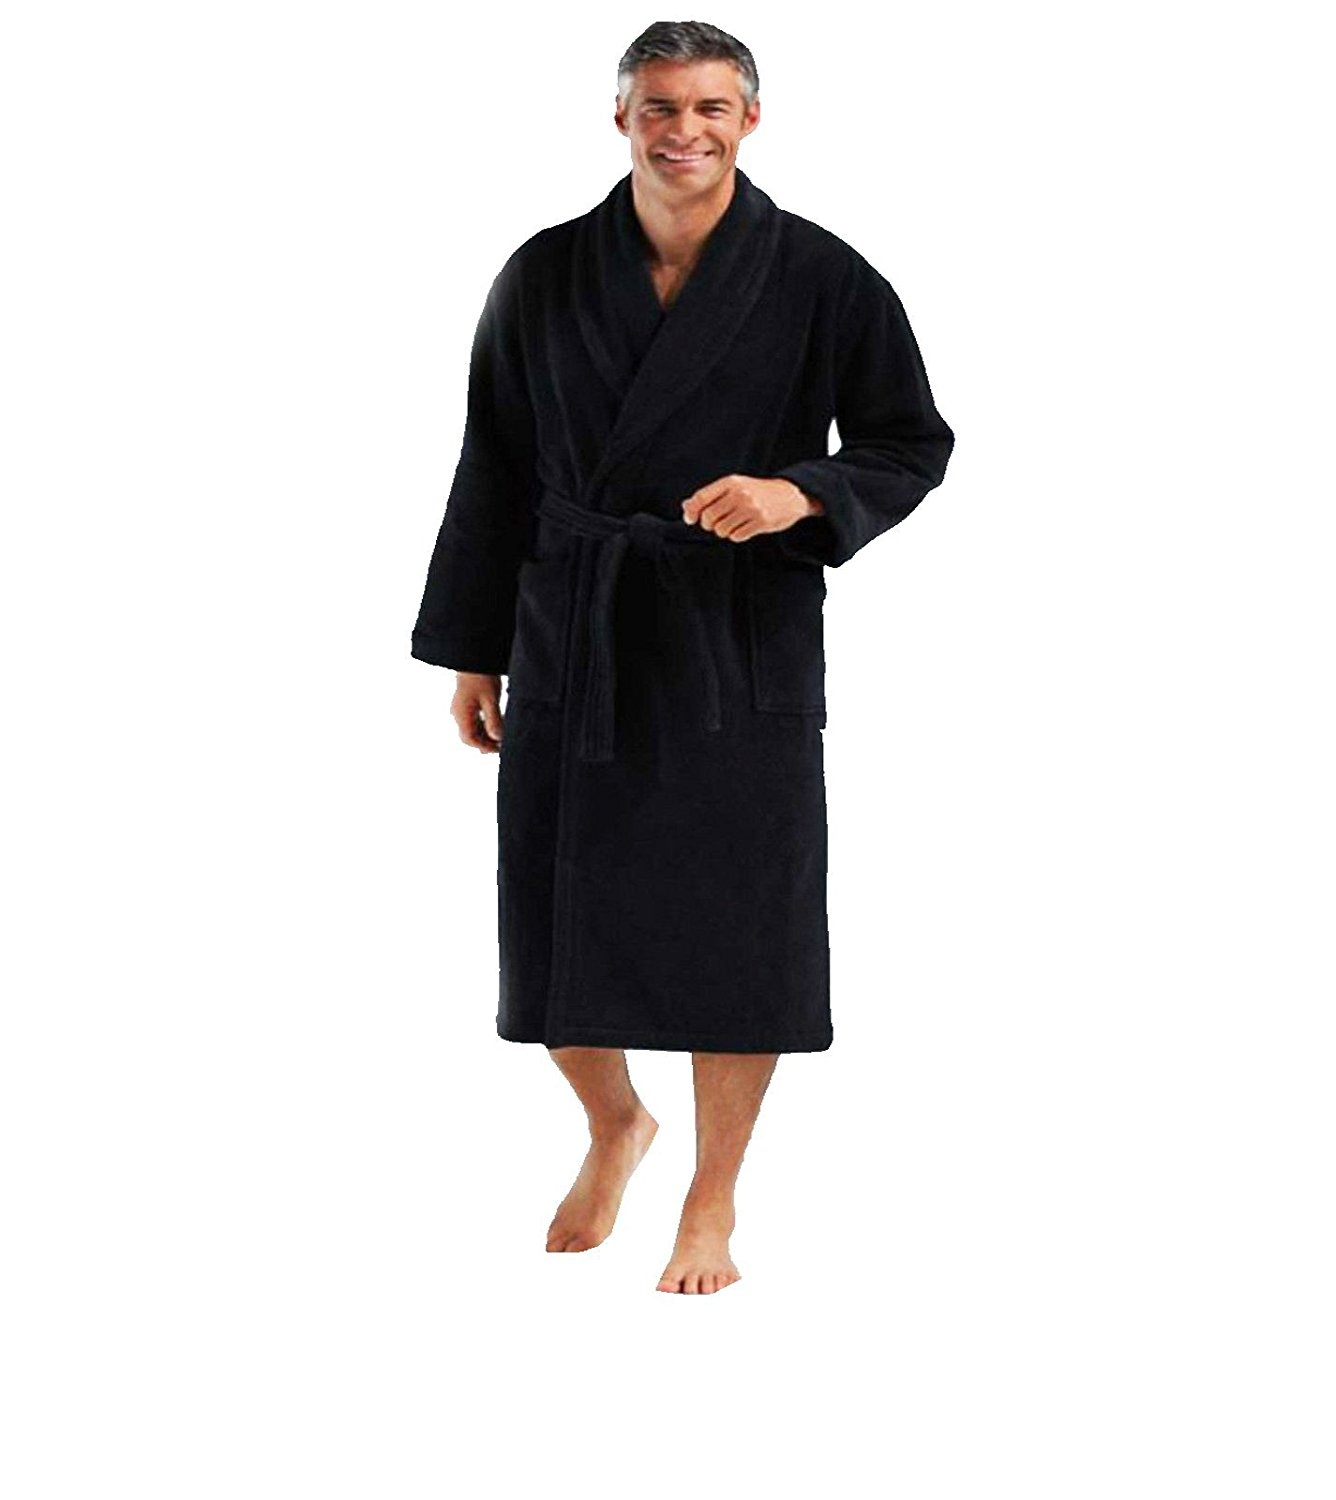 MICHAEL PAUL Mens Hooded Soft & Cosy Snuggle Fleece Dressing Gown